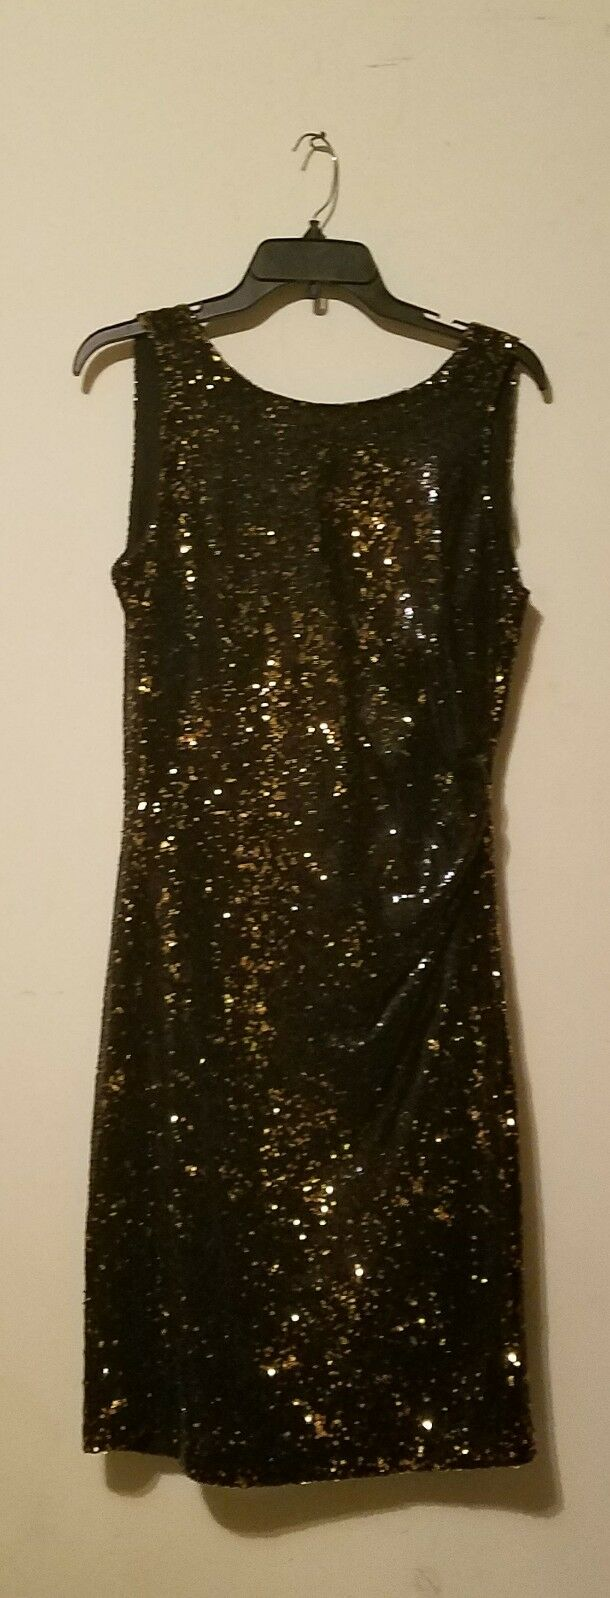 NWT Zara Sleeveless Sequinned Plunging Back Cocktail Dress schwarz Gold sz S